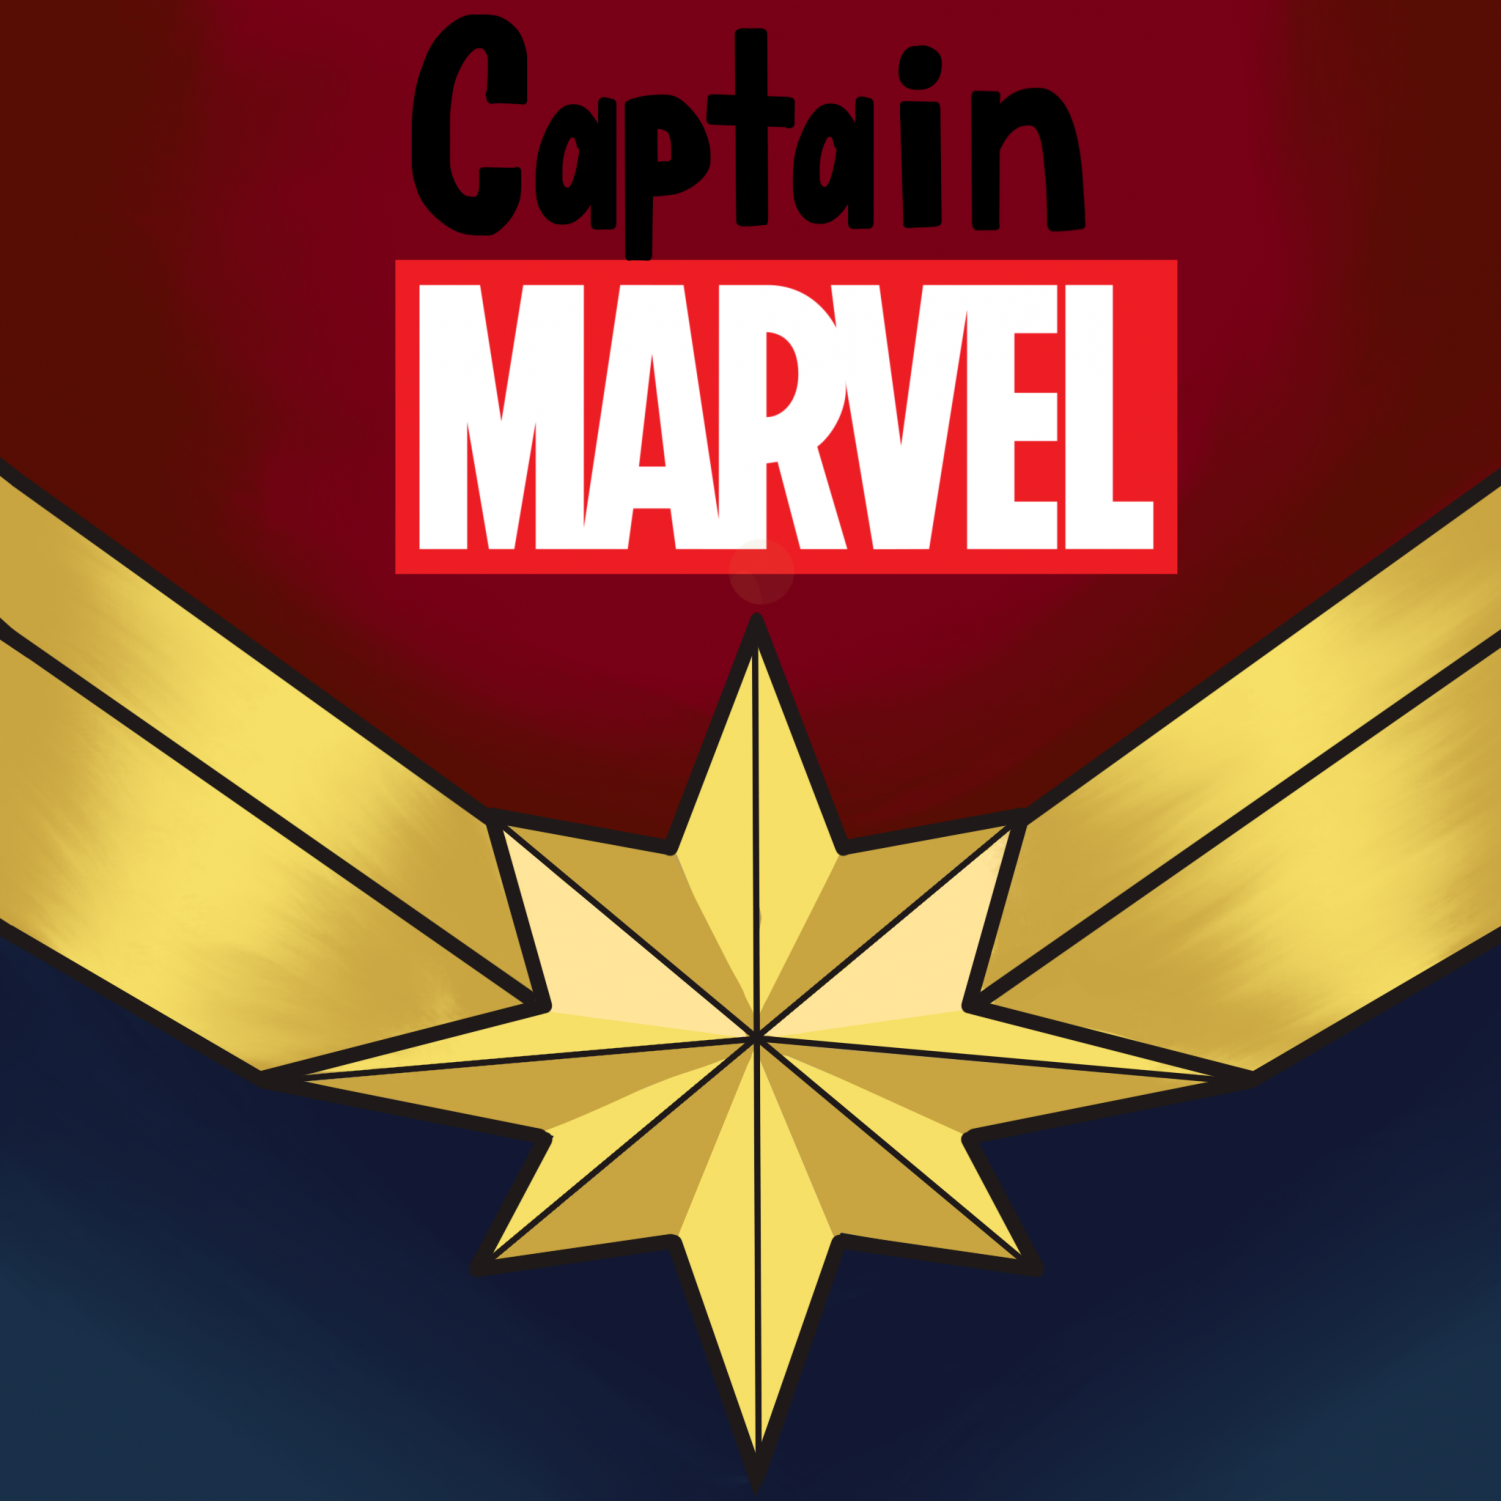 Captain Marvel more than makes up for its sub-par plot with extensive character development, impressive special effects and a skillful recreation of 1990s culture.